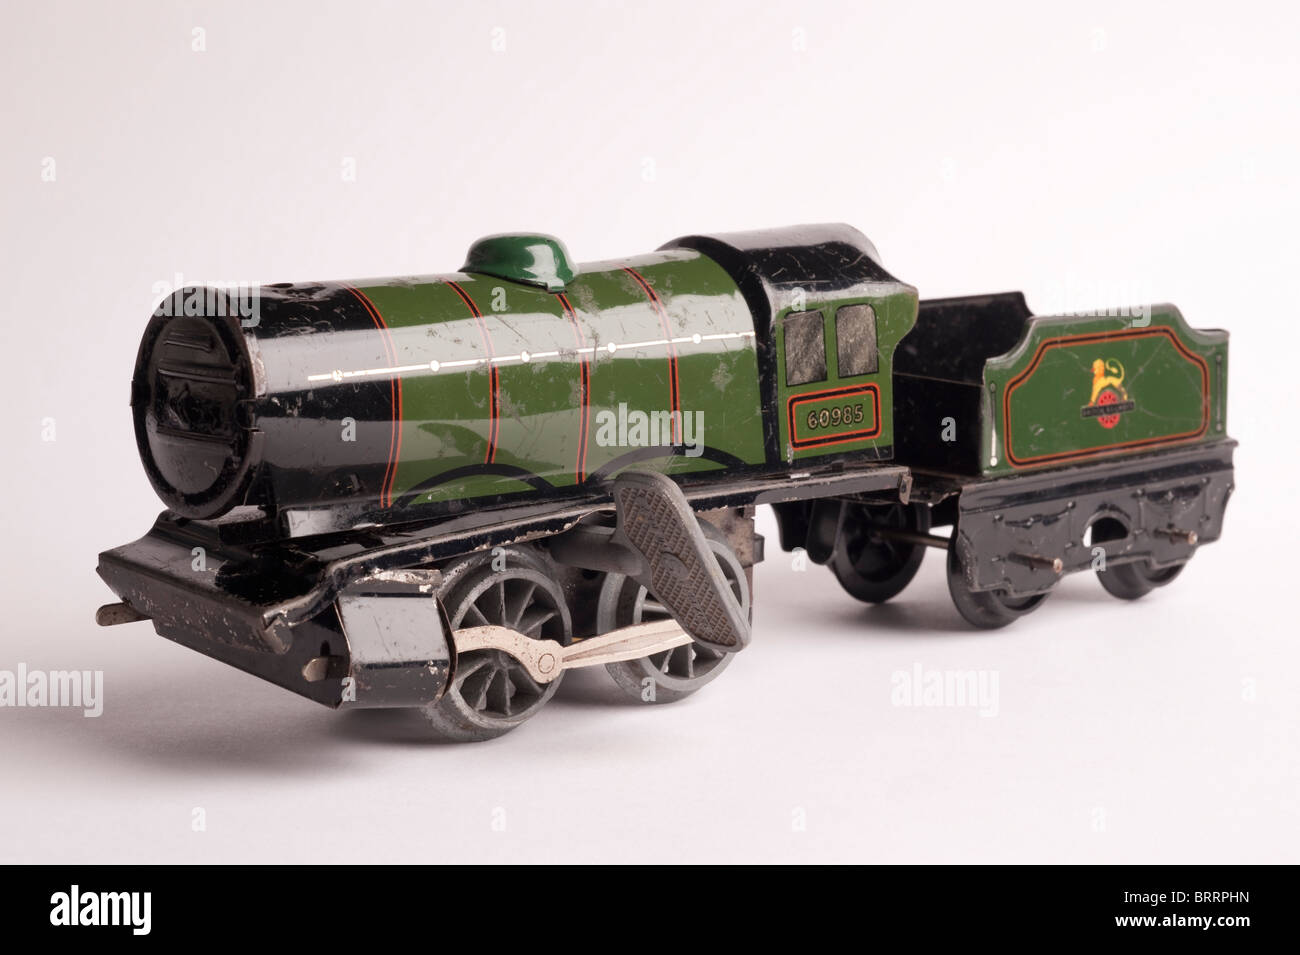 Tinplate Hornby 0 Gauge Train with Key, front view, circa 1950s - Stock Image